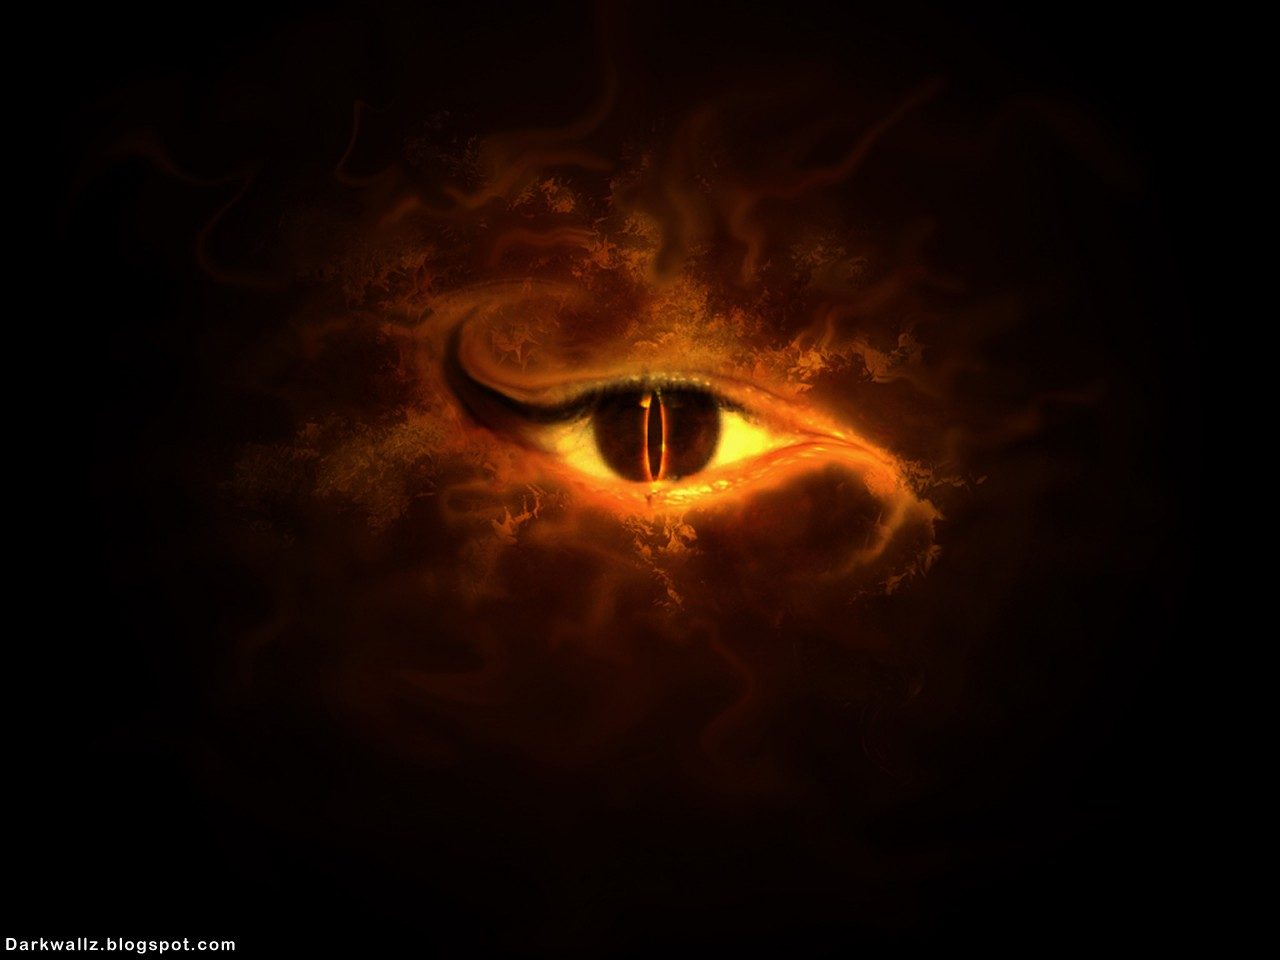 Scary Eyes Wallpapers 61| Dark Wallpaper Download